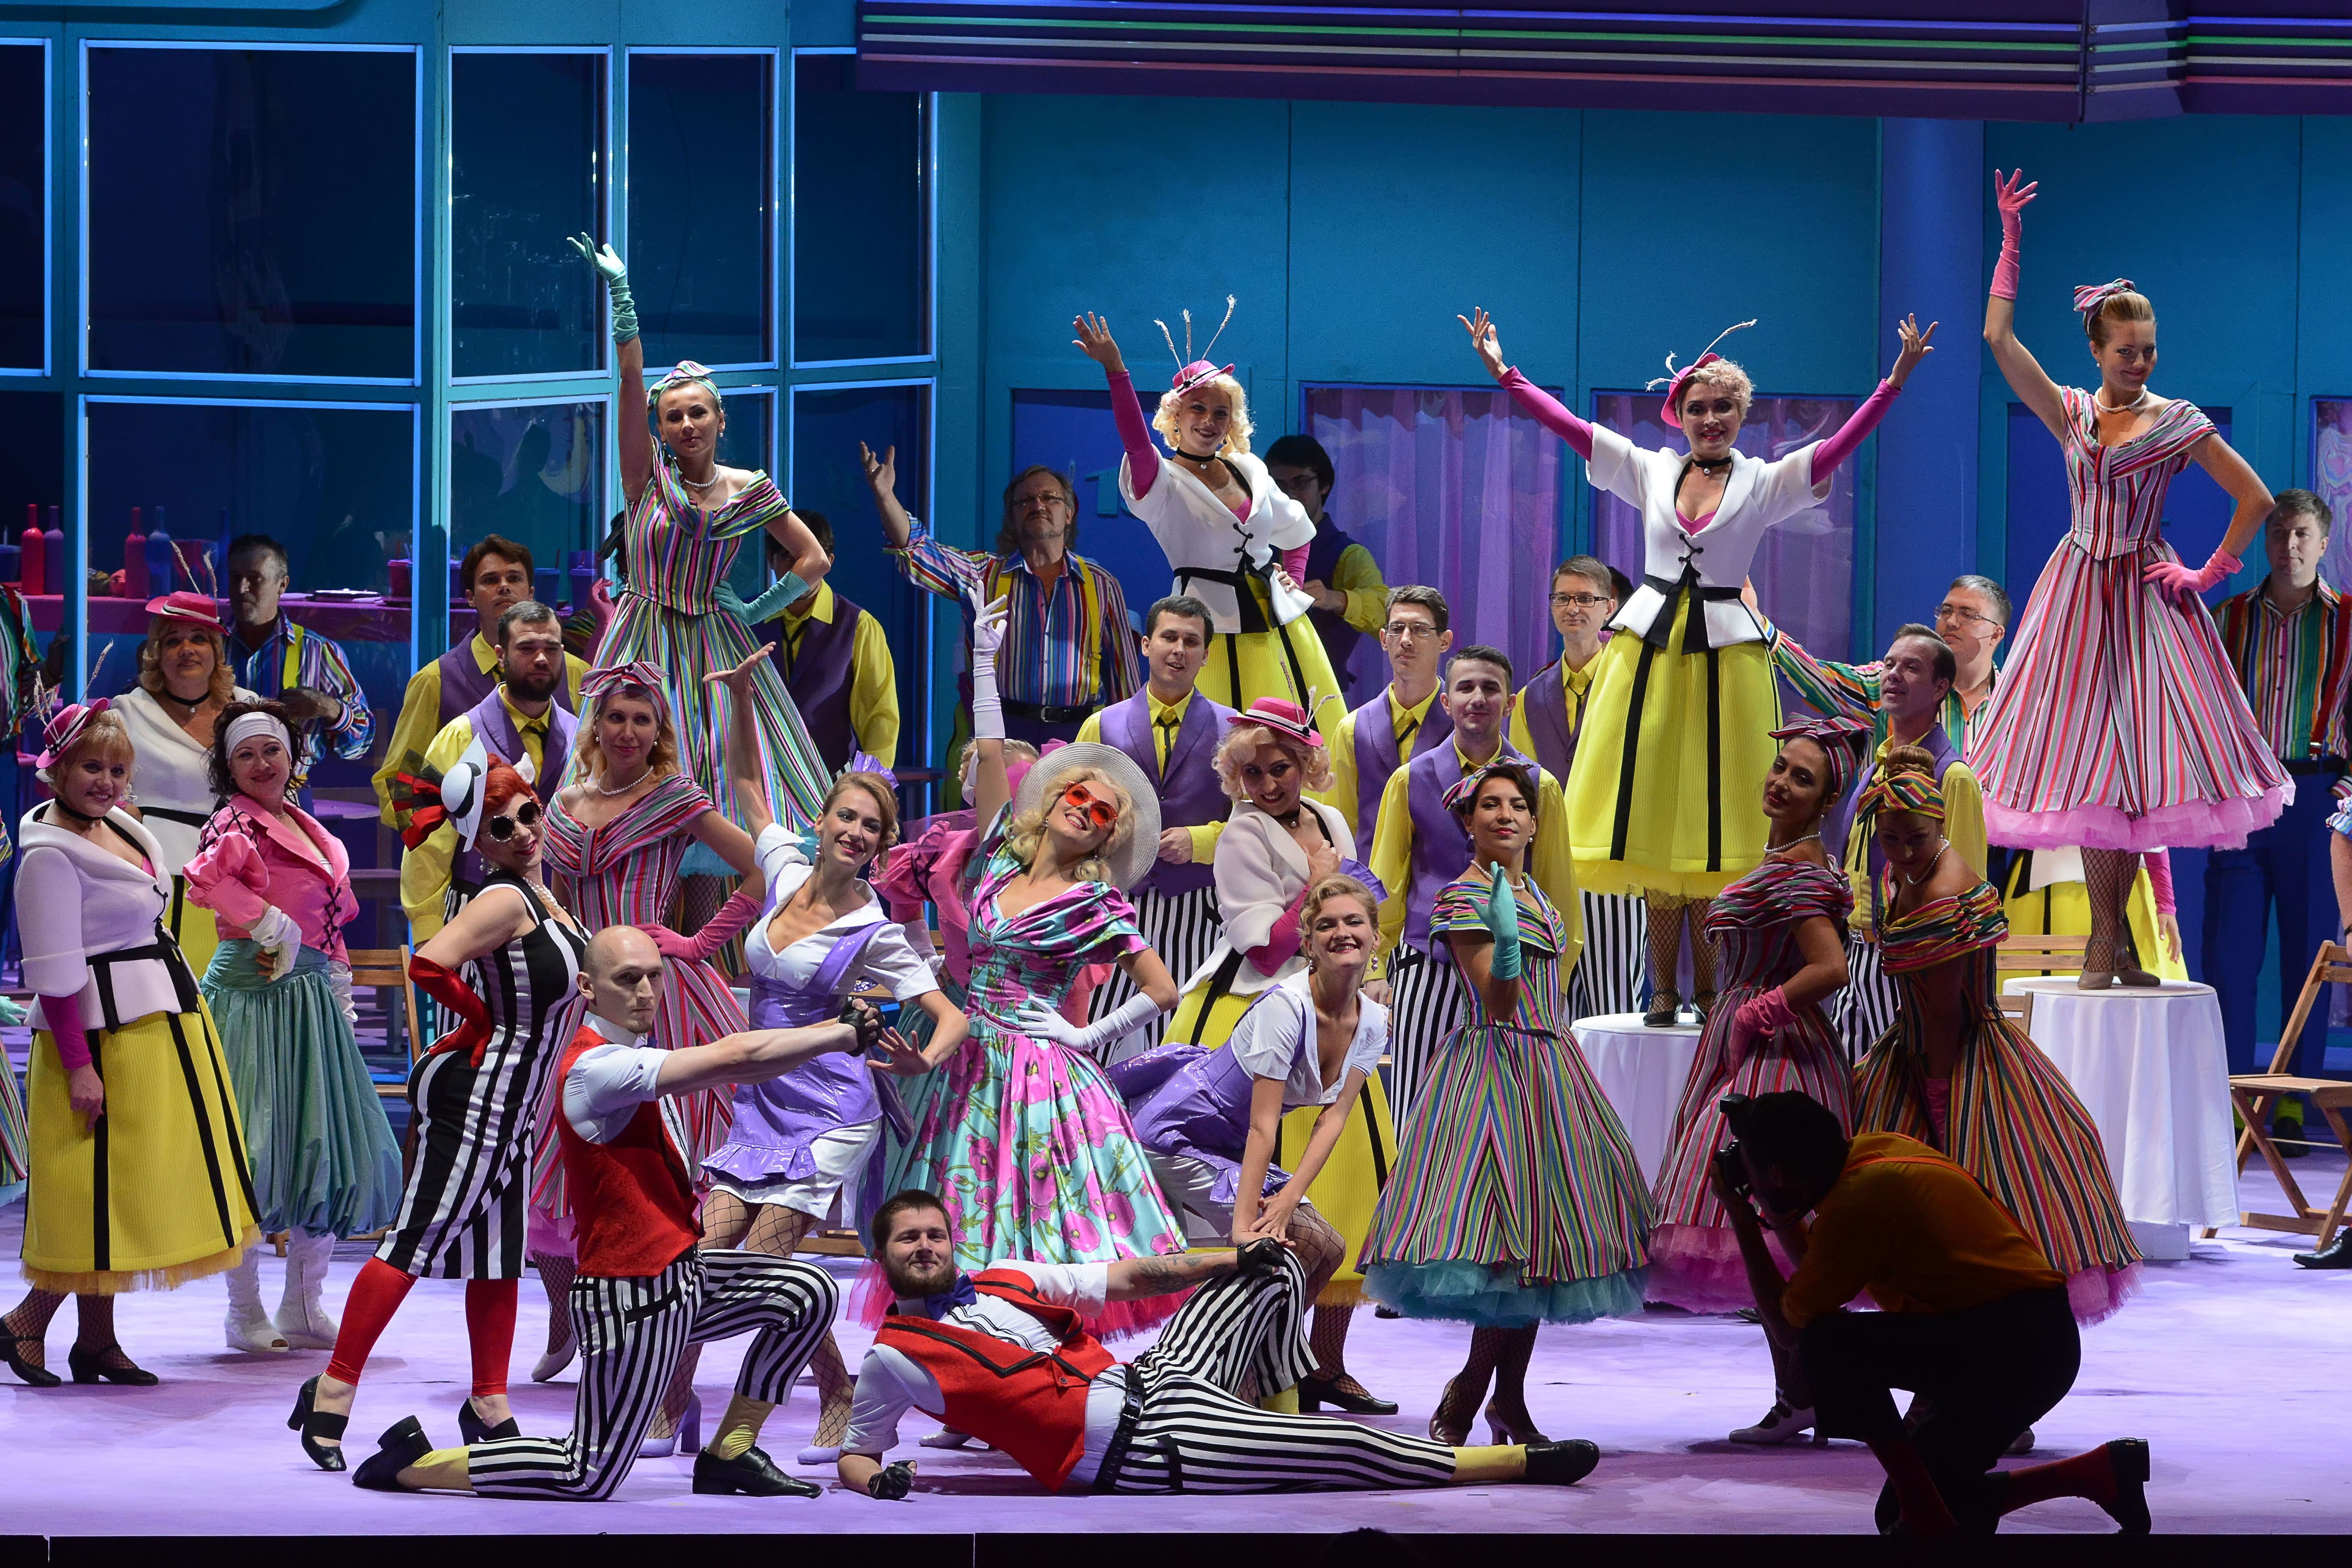 Musical Comedy Theater (Novosibirsk): repertoire, history, troupe